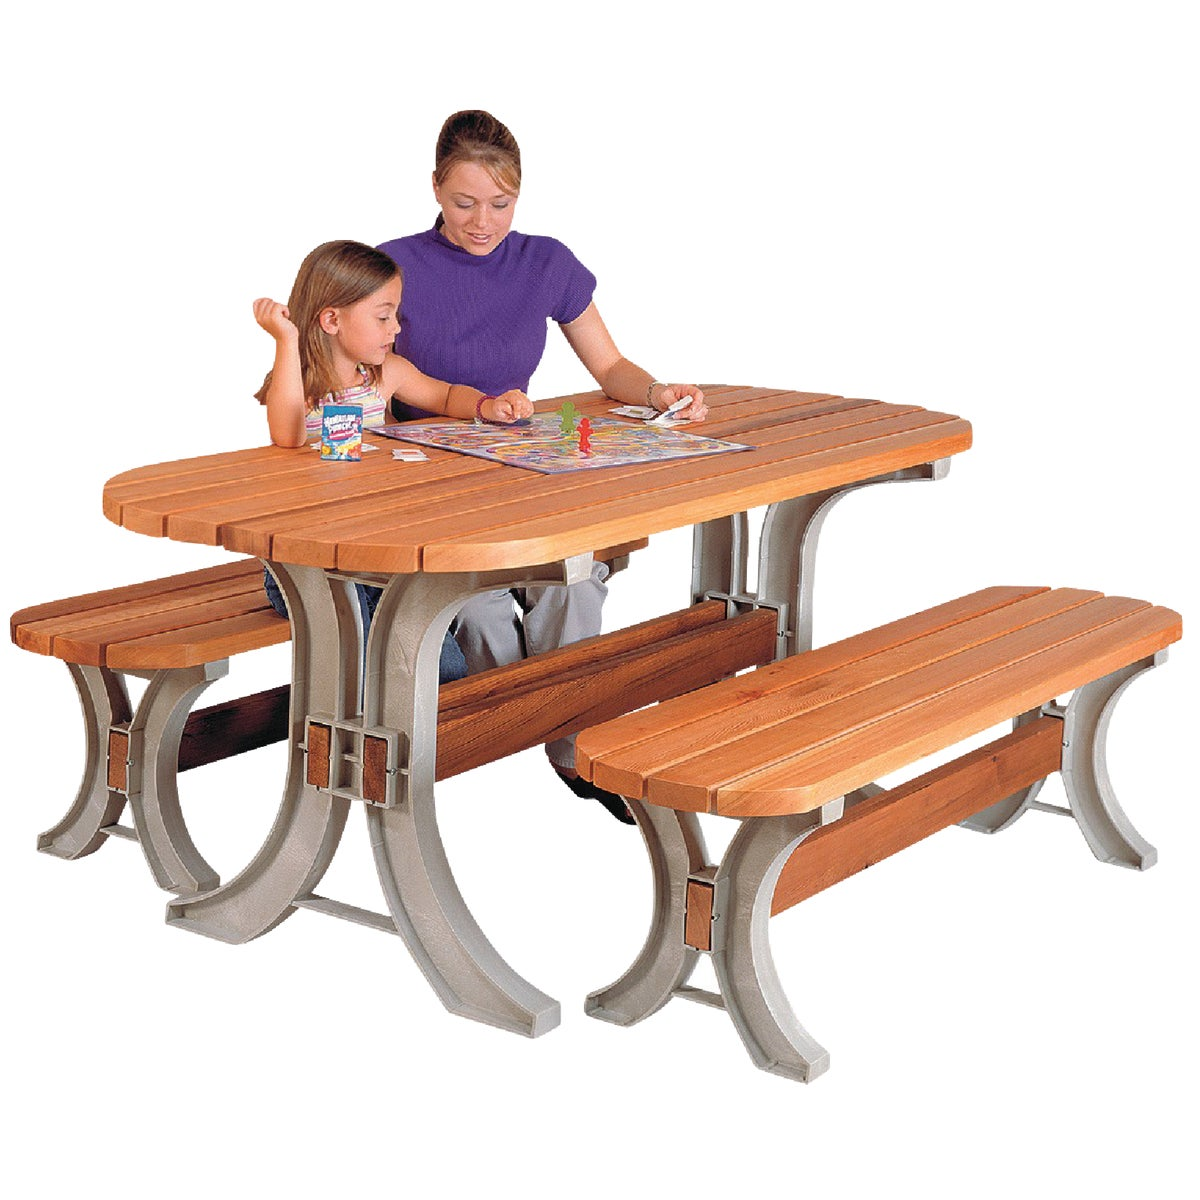 SAND PICNIC TABLE KIT - 90182MI by Hopkins Mfg Corp